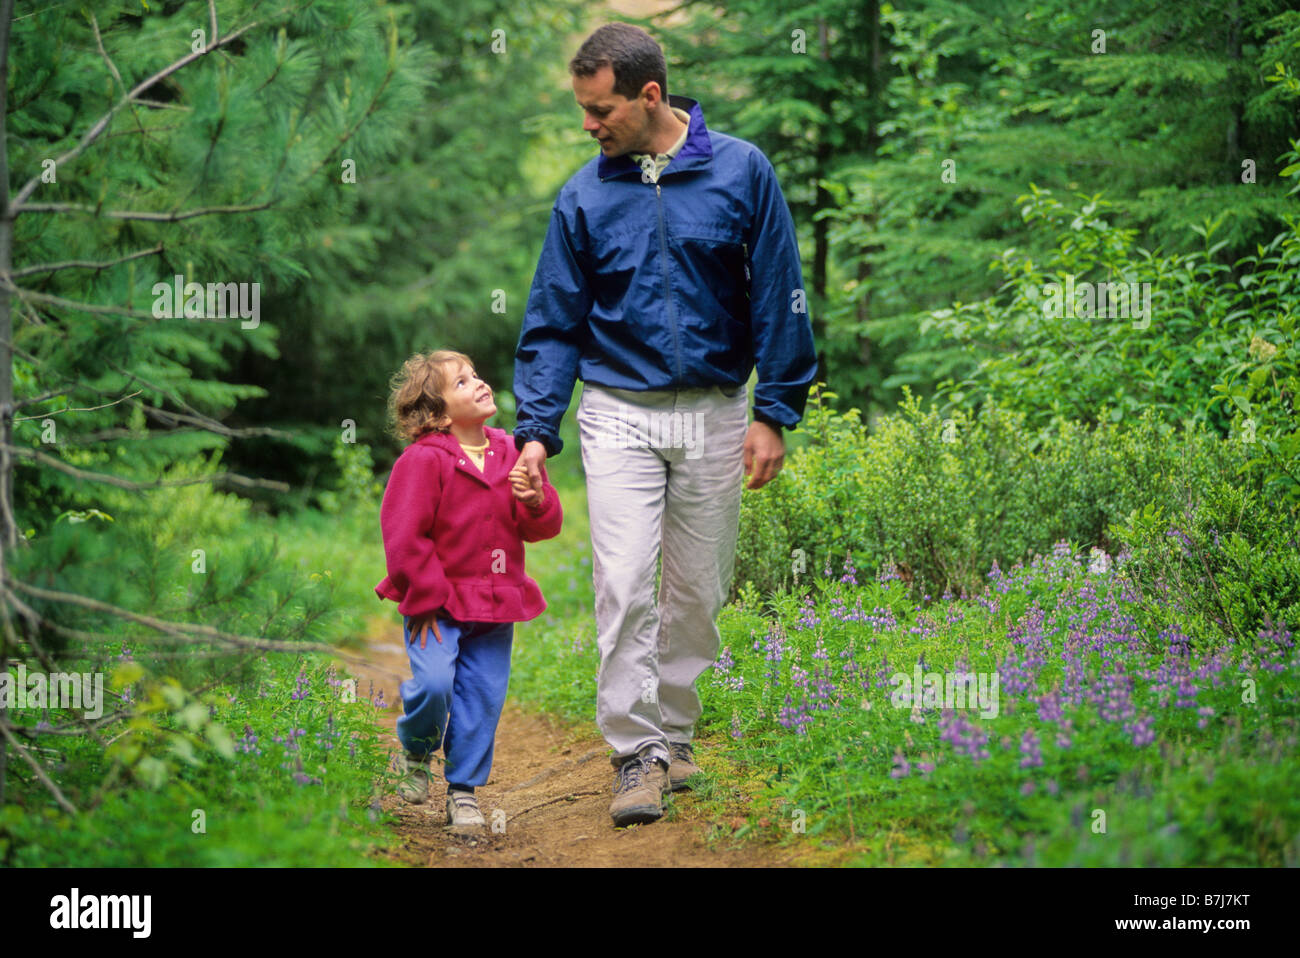 Dad with daughter walking something is